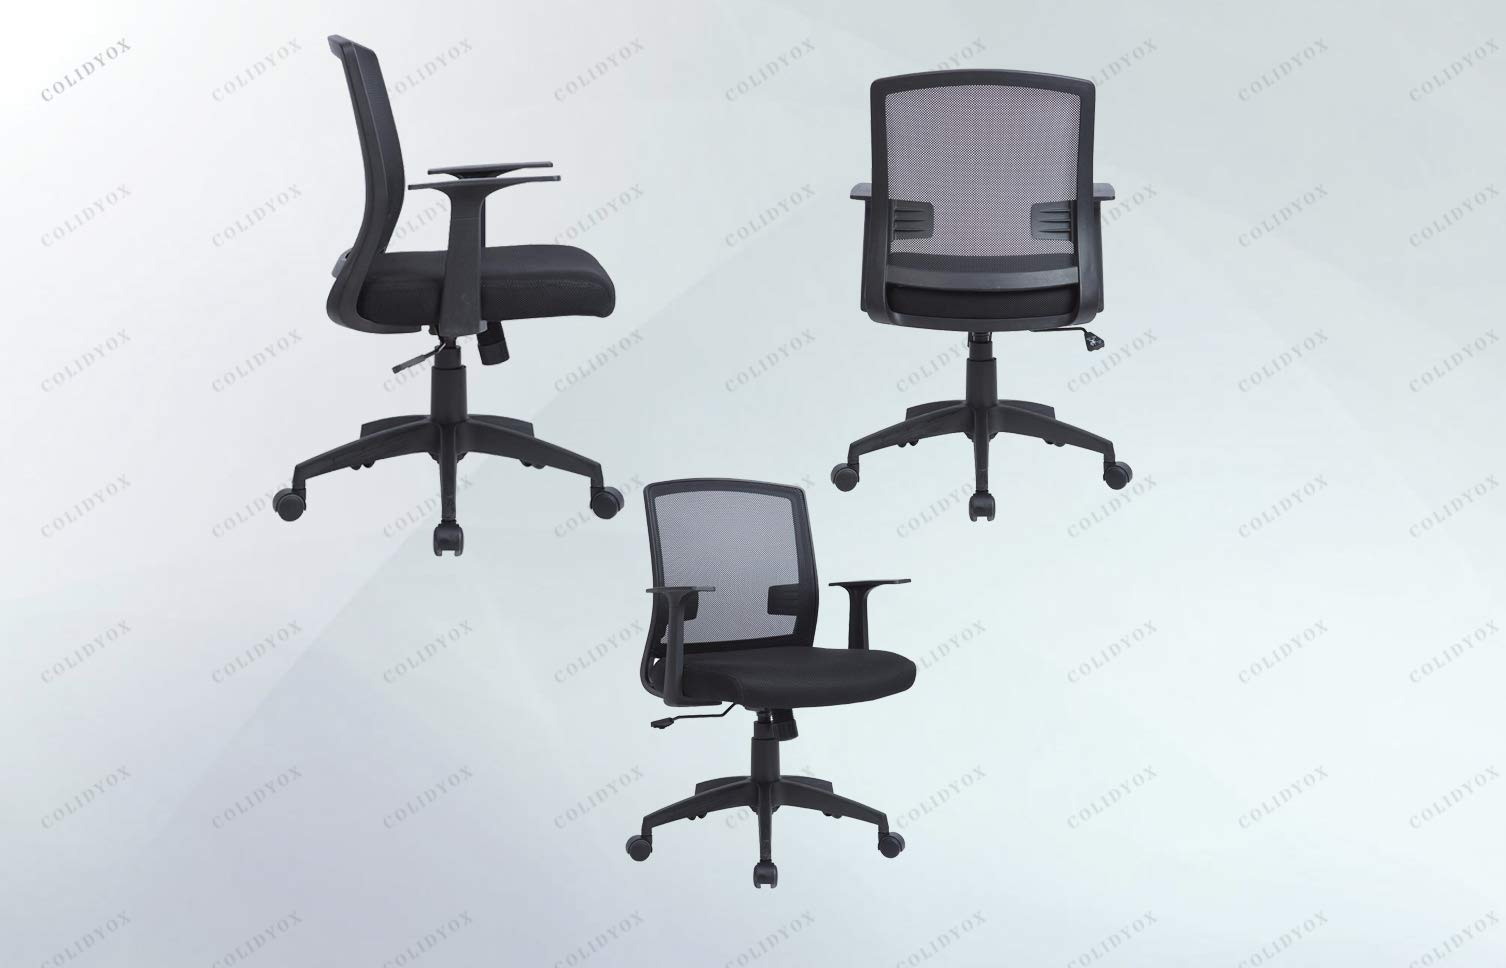 COLIDYOX>>>Ergonomic Mesh Office ChairThis Office Chair has an extremely comfortable nylon back that molds around and supports back, size and look makes it ideal for any conference room or office seat